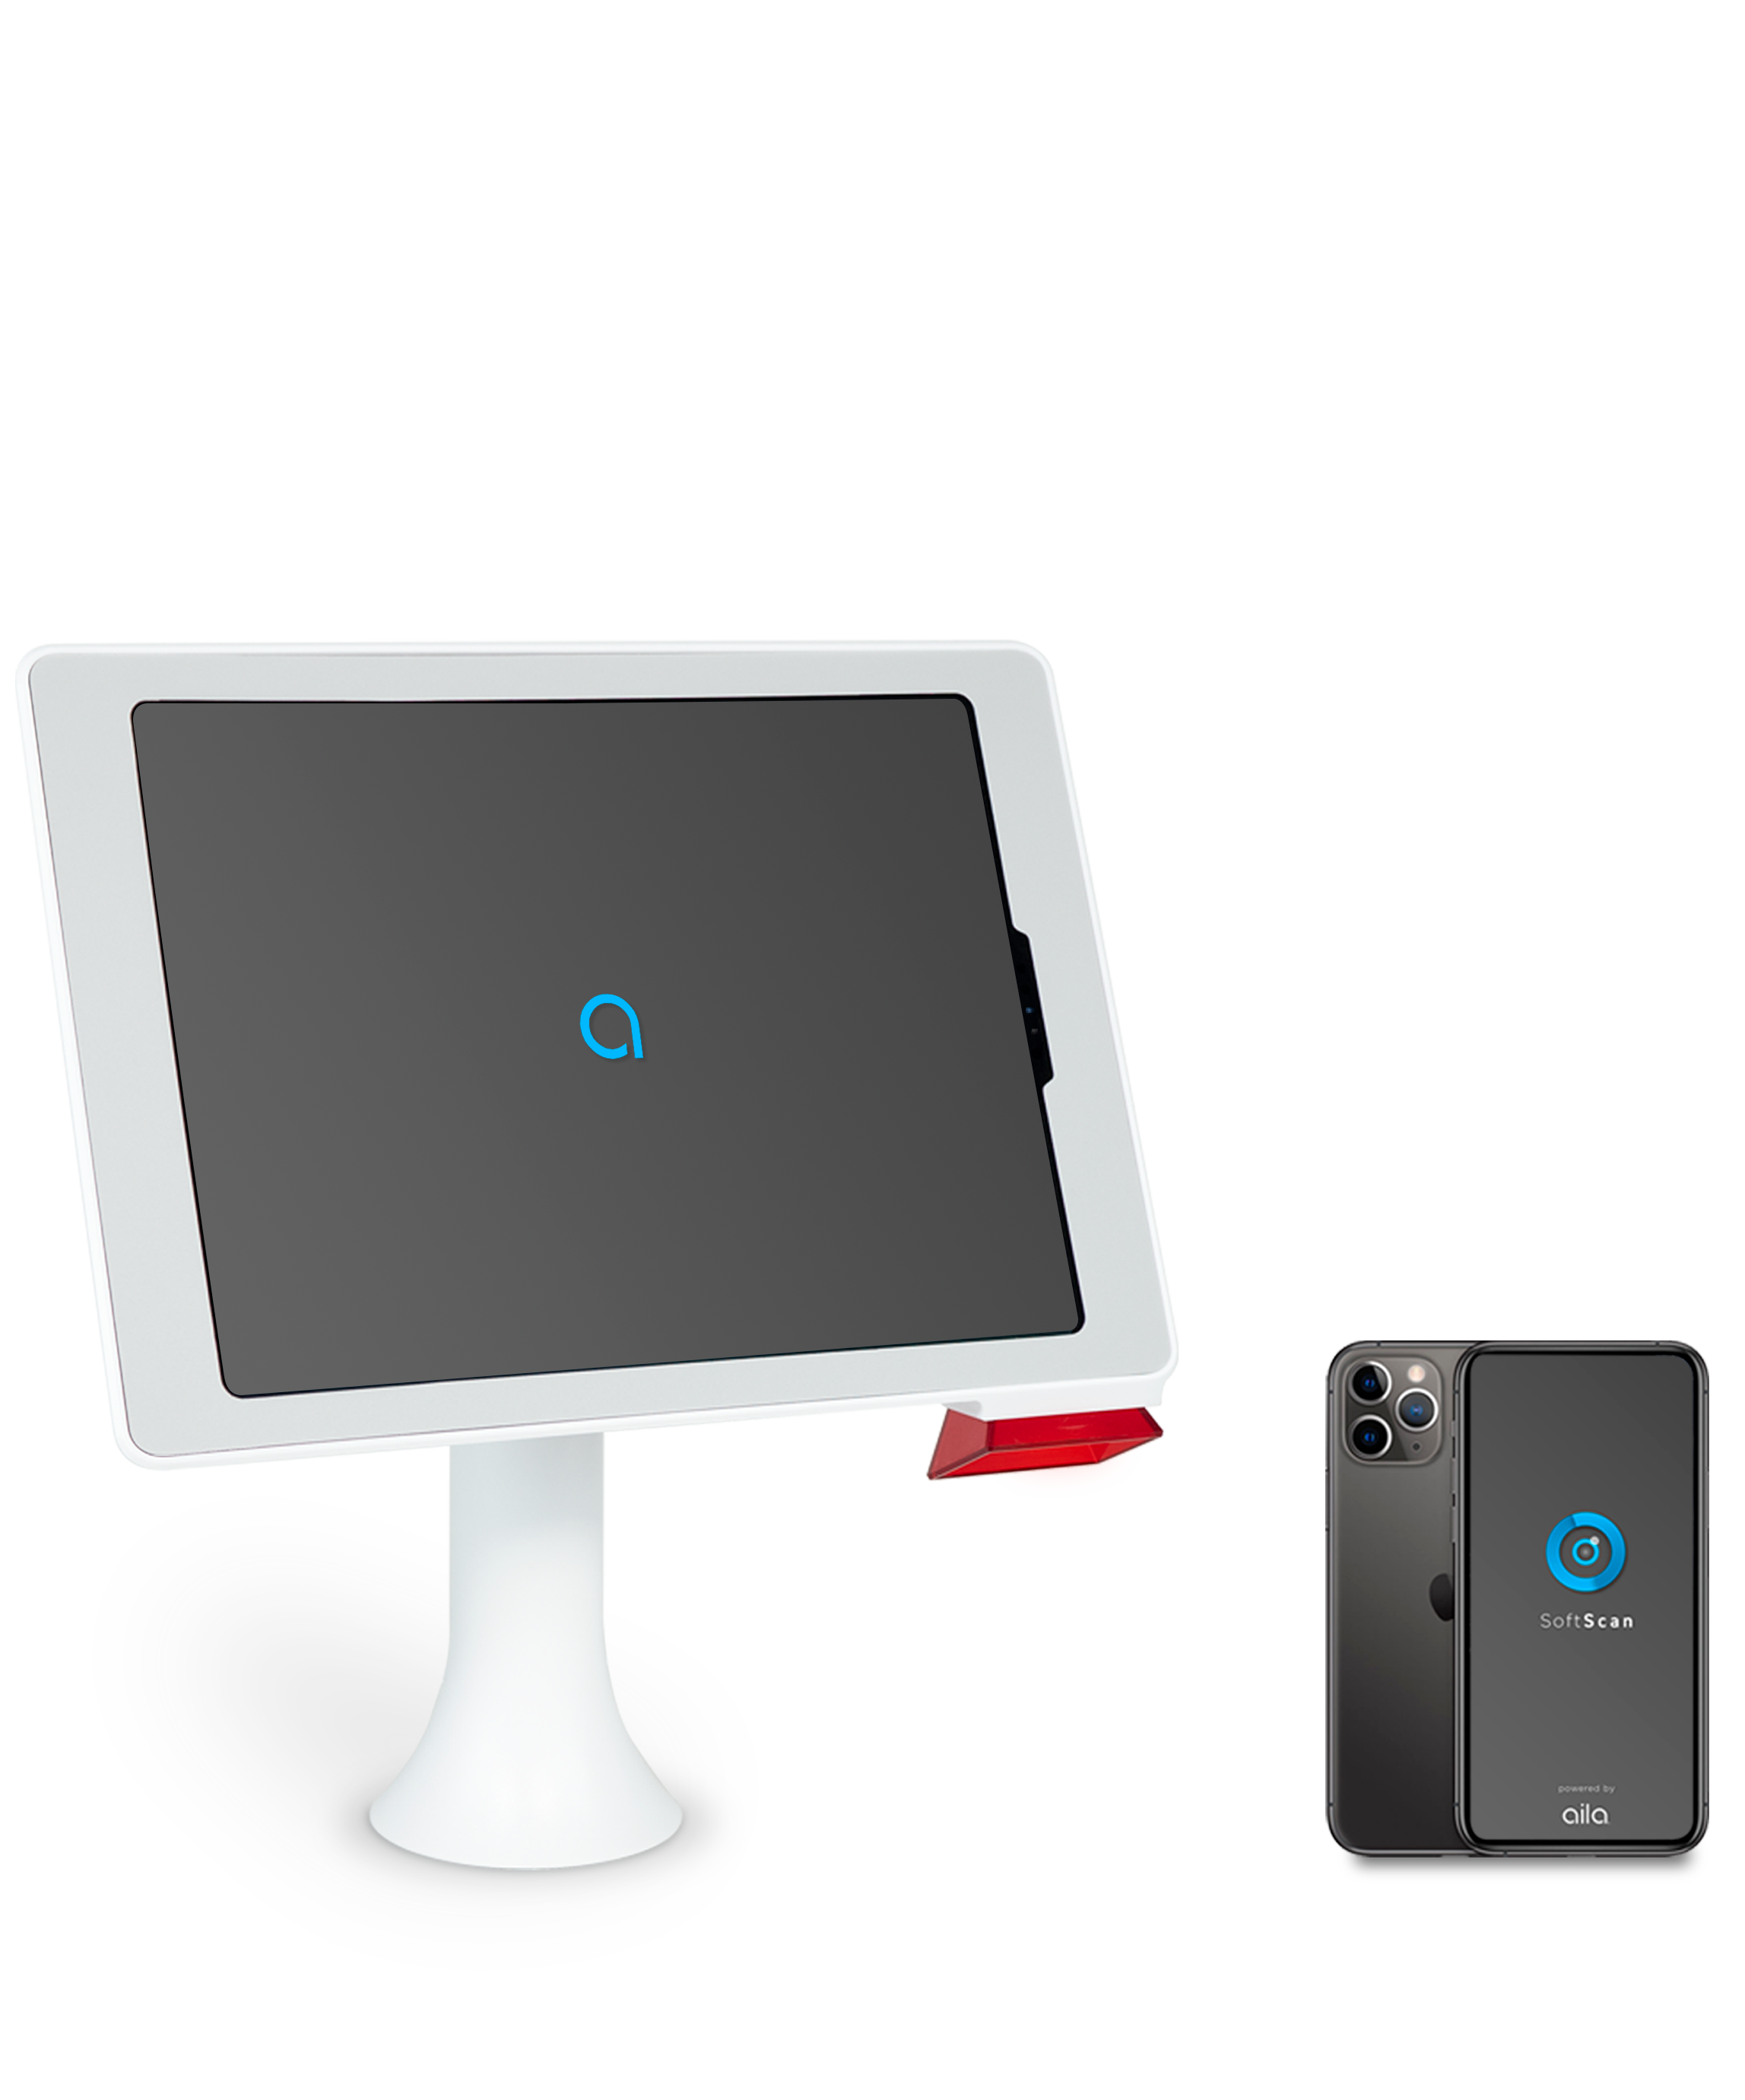 aila's interactive kiosk and softscan